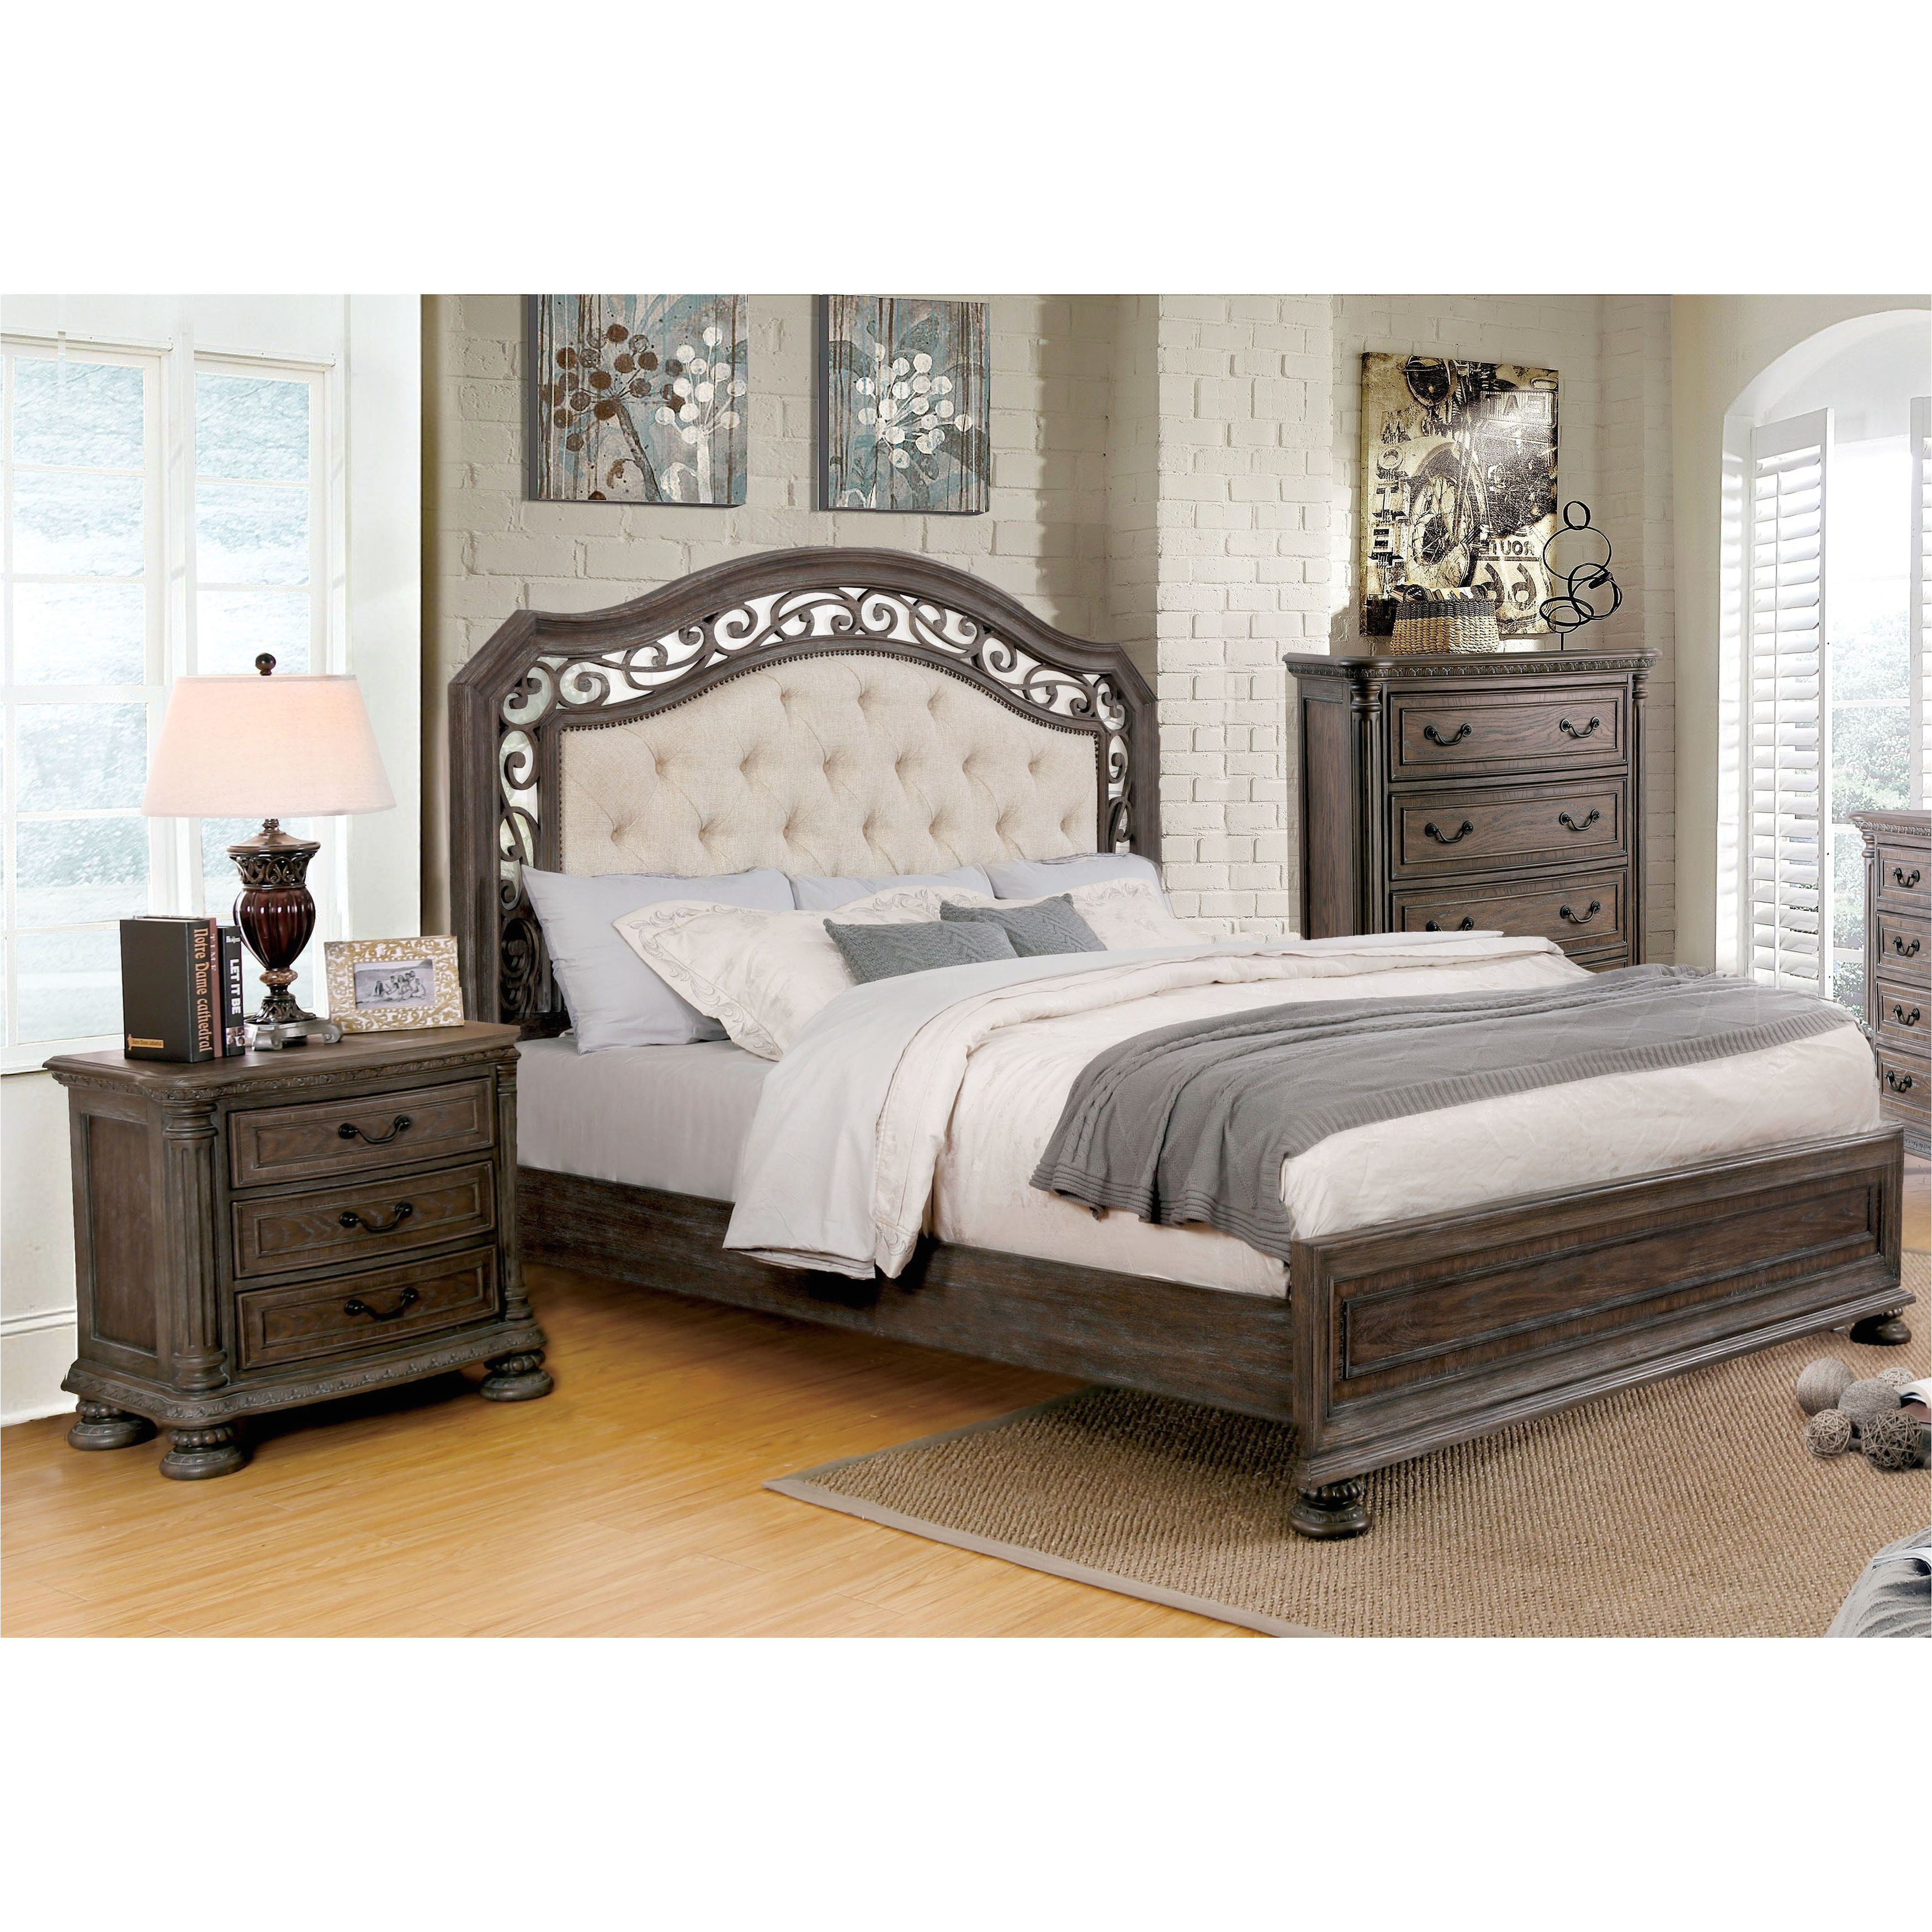 furniture of america brigette ii traditional 3 piece tufted upholstered rustic natural tone bedroom set king size eastern king